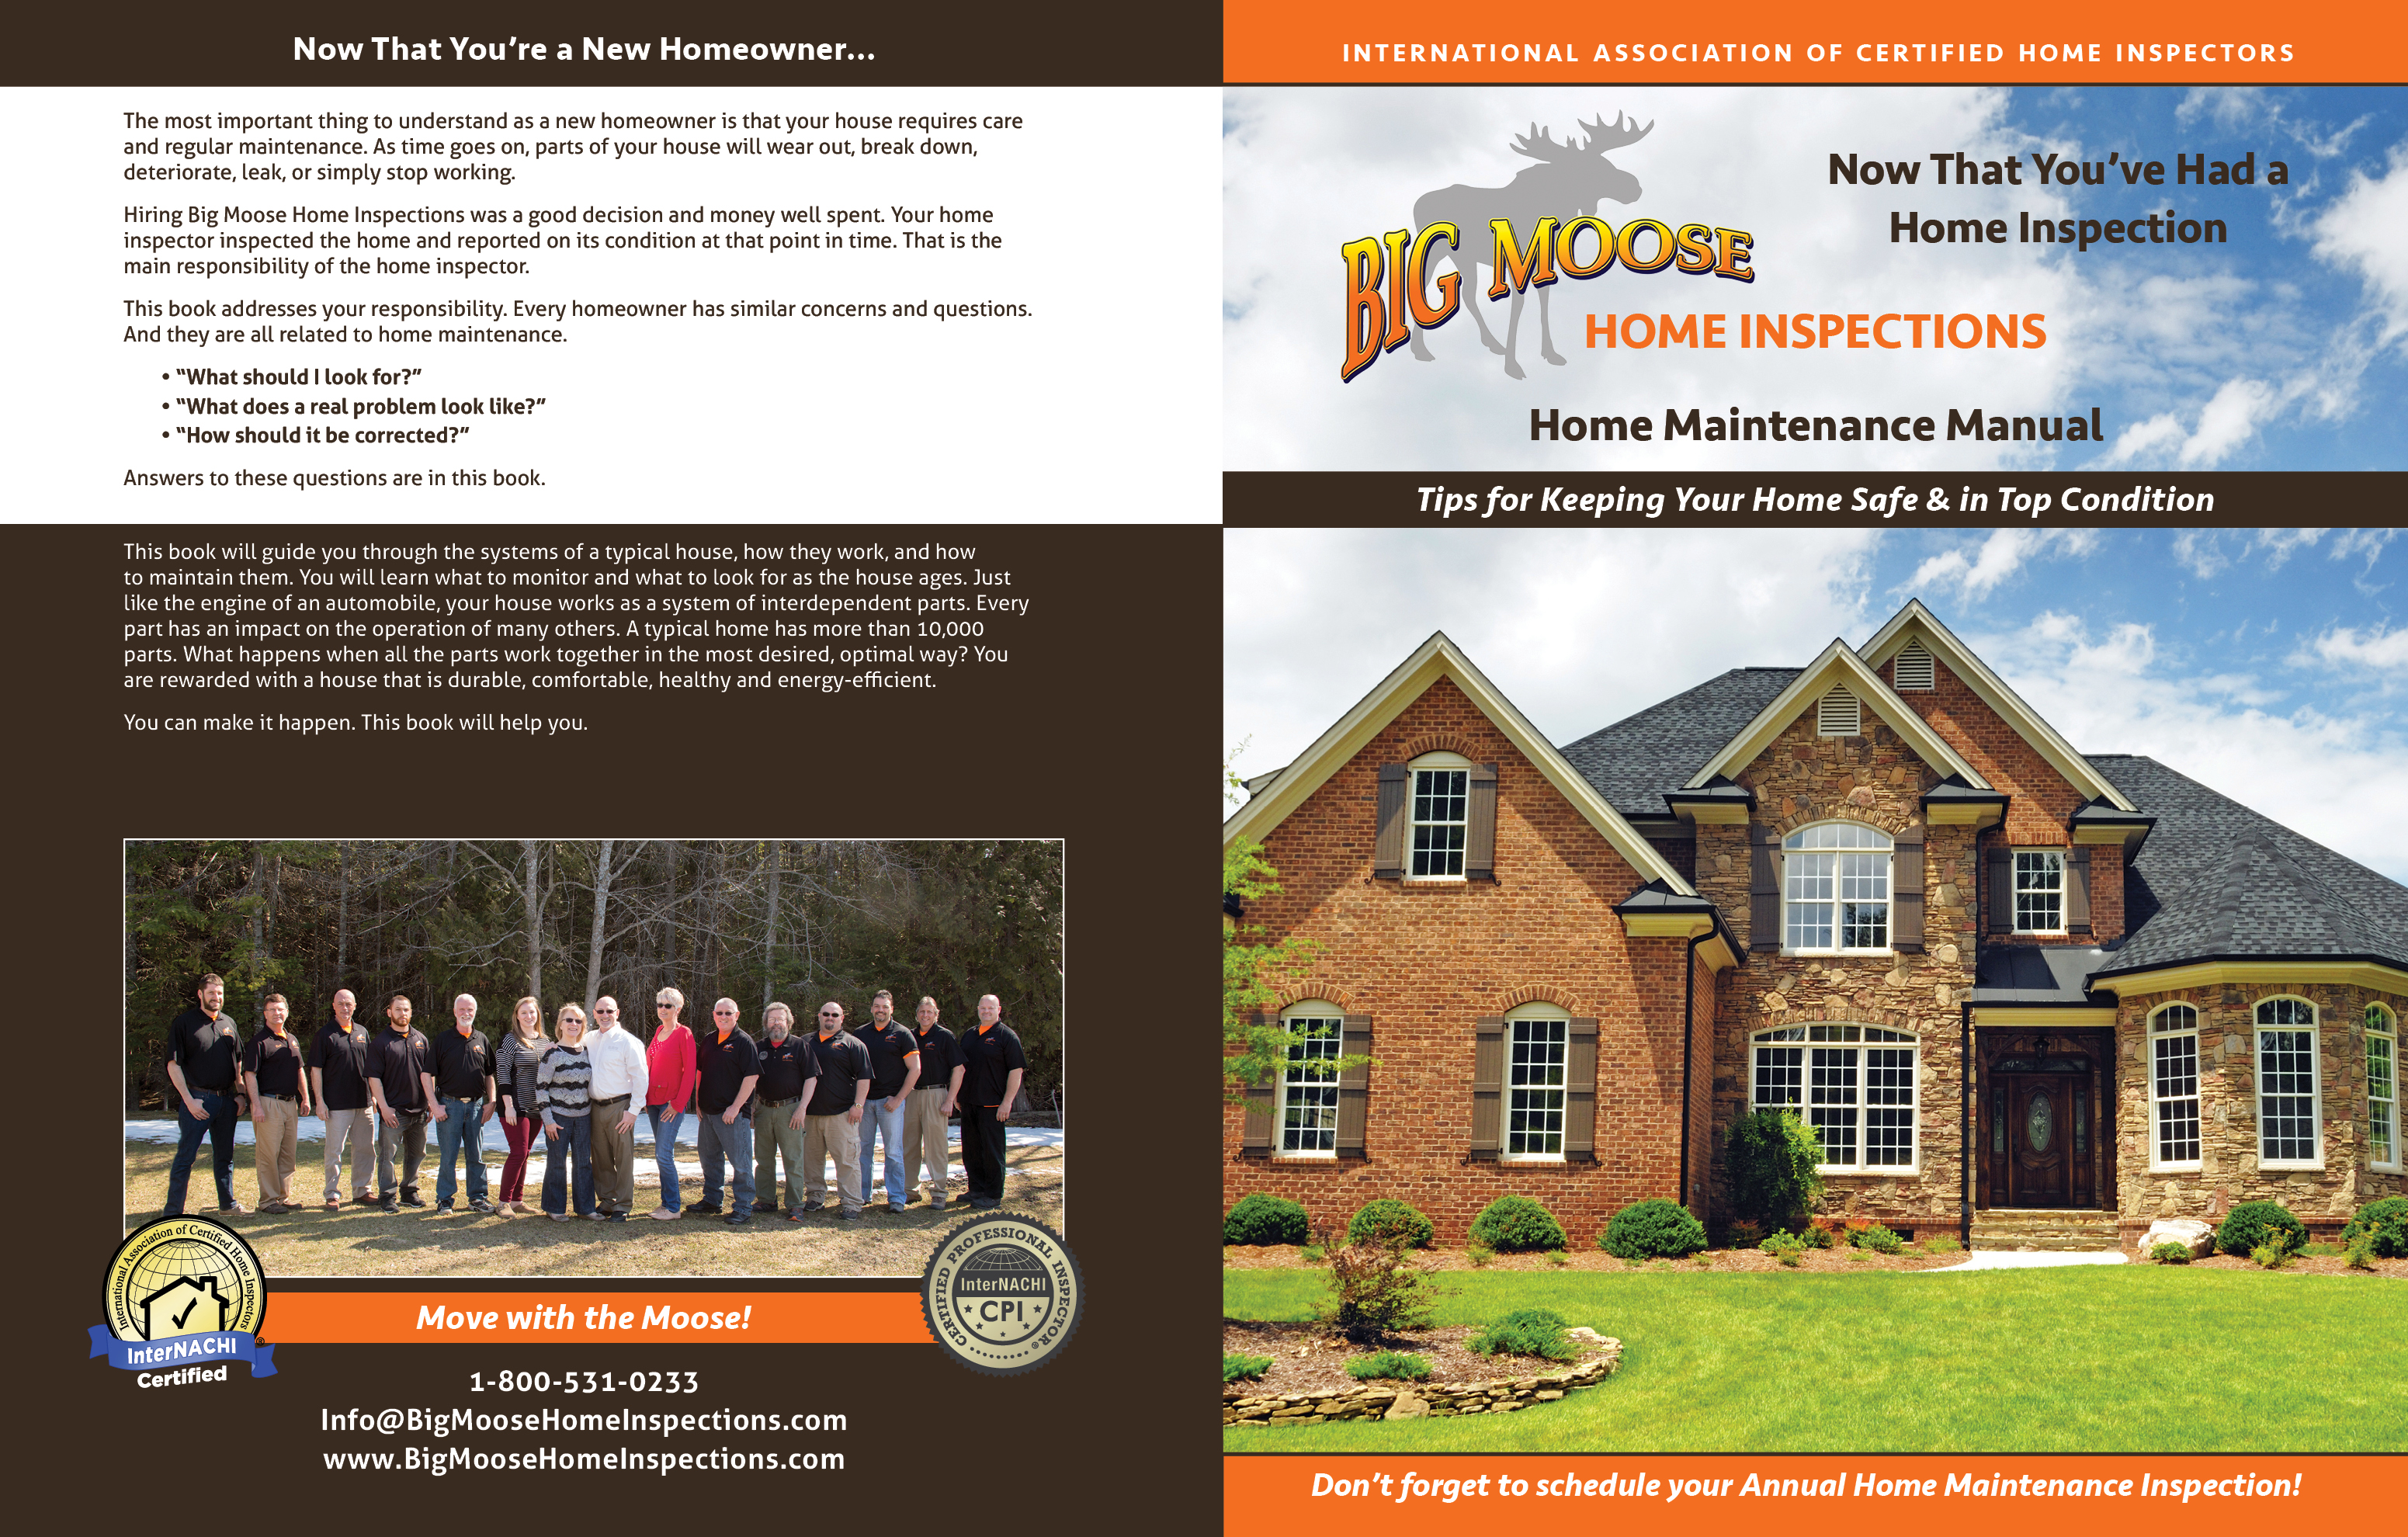 custom home maintenance book for moose home inspections - inspection gallery